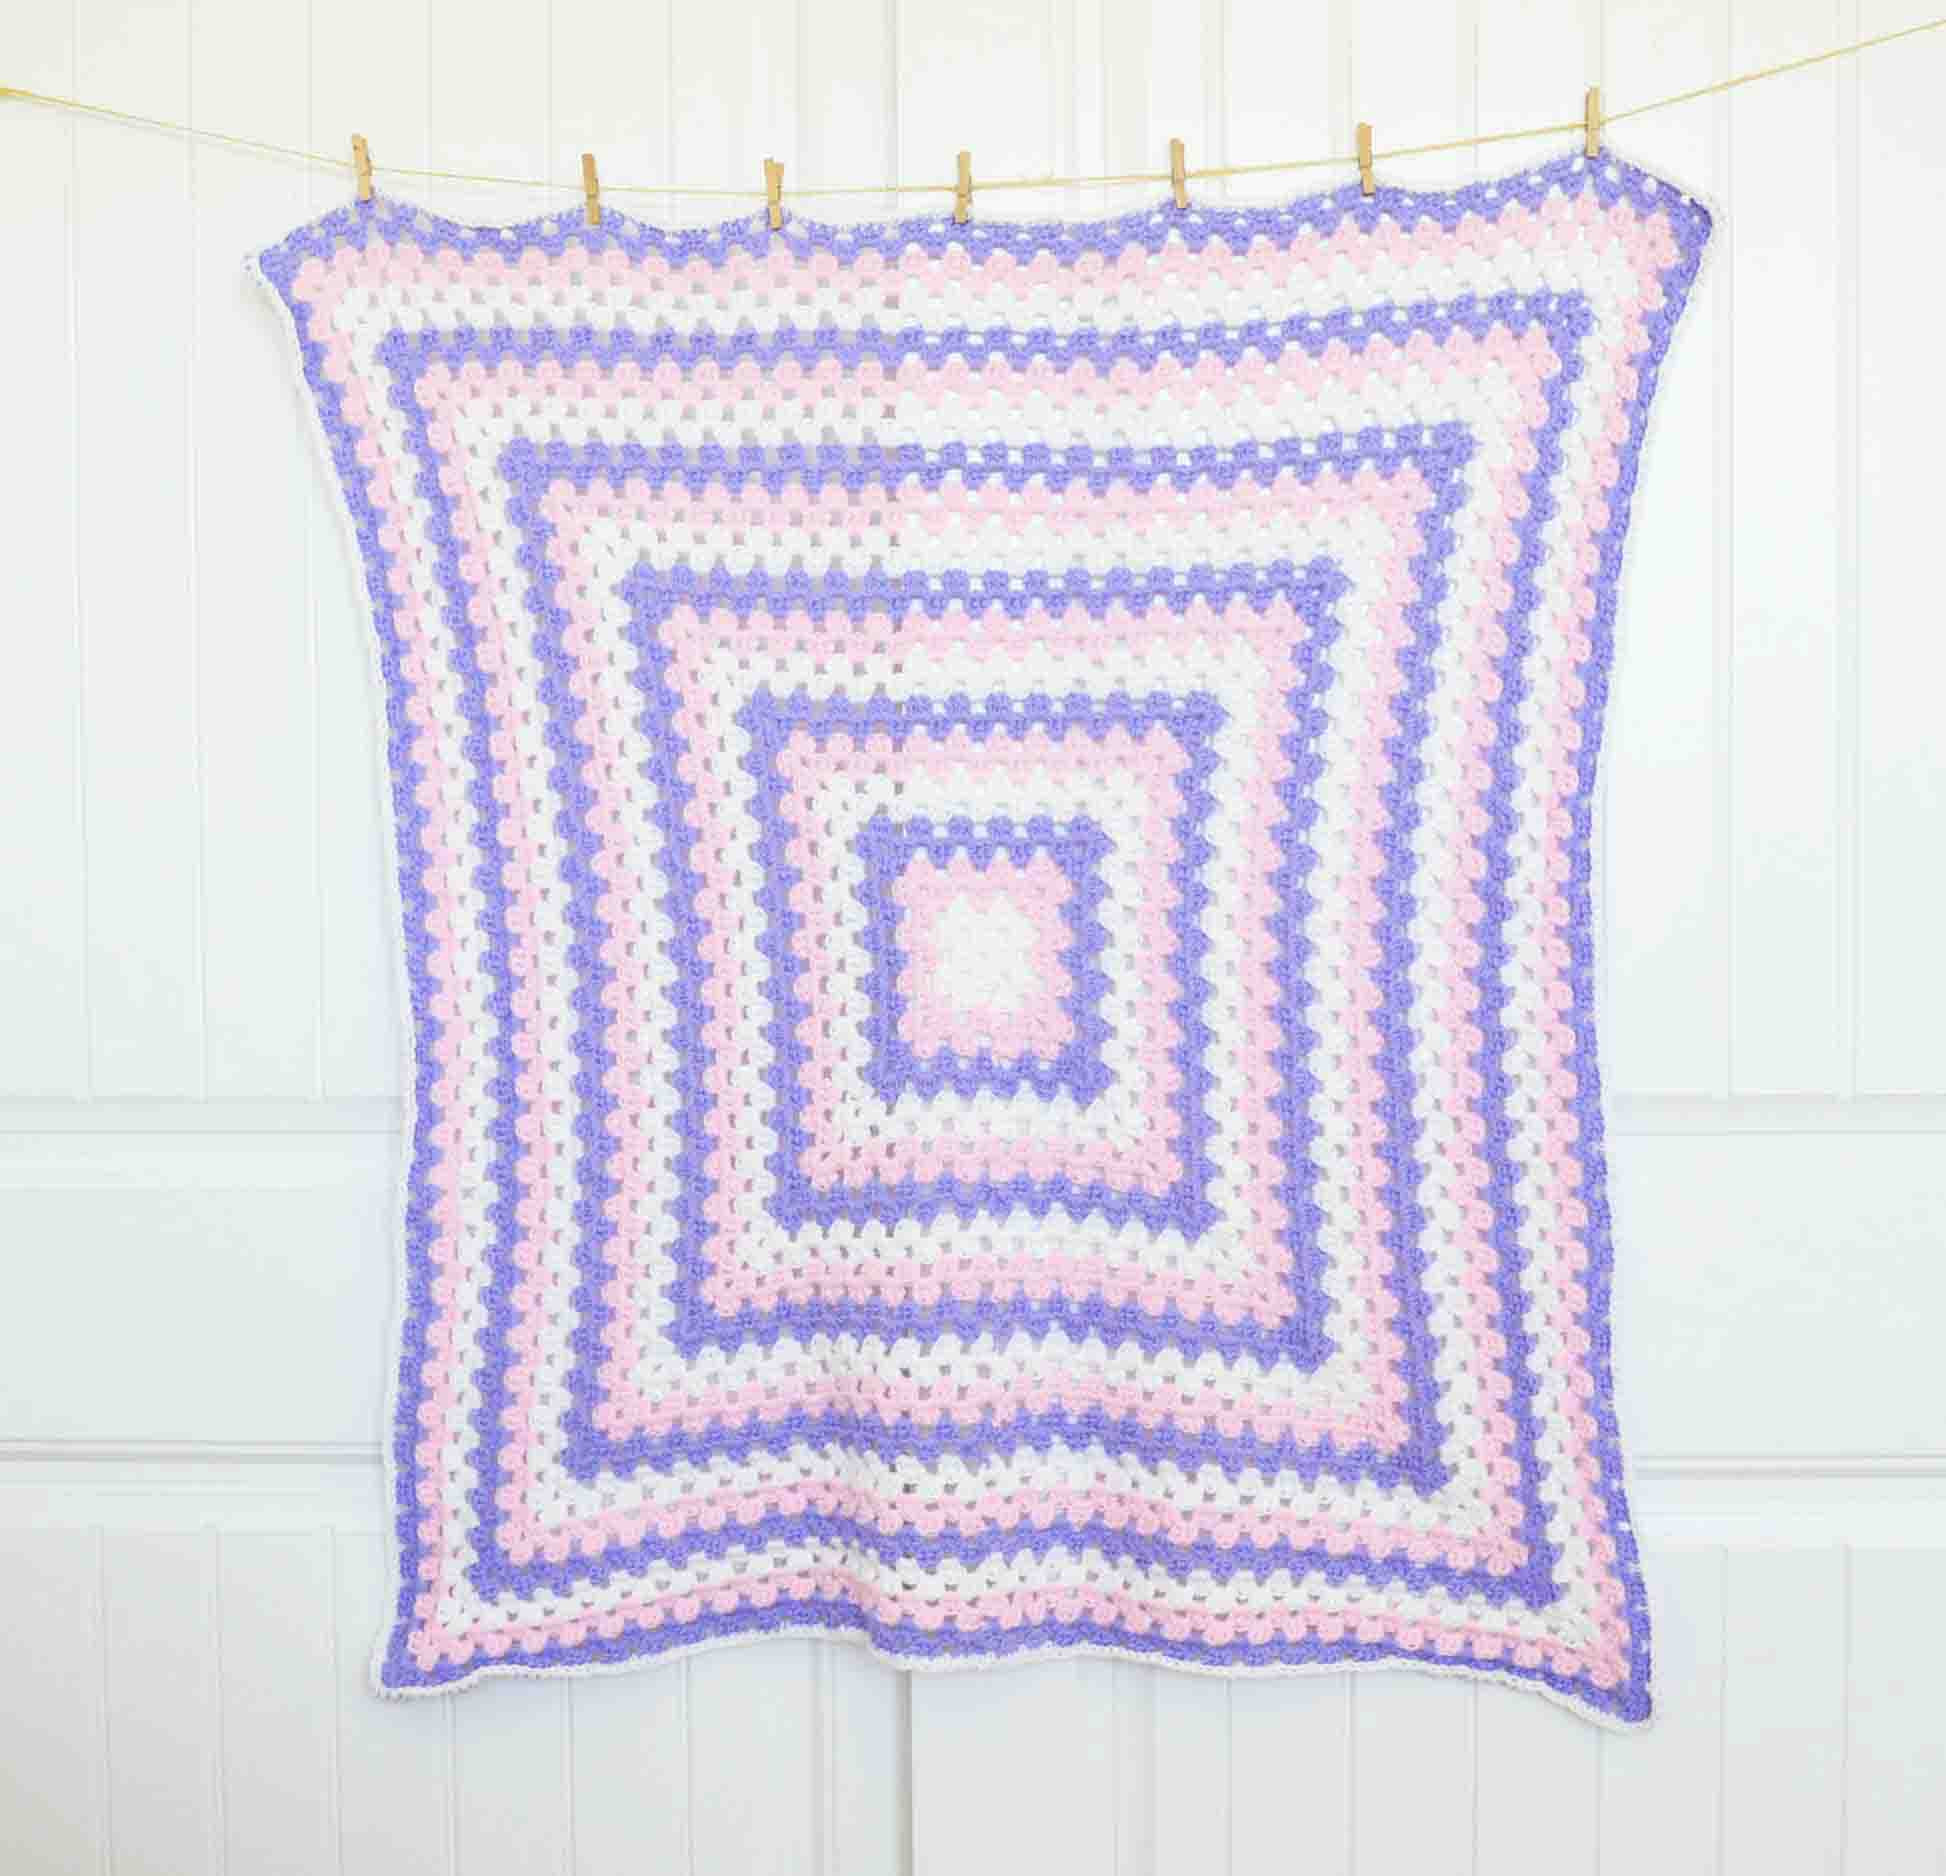 Inspirational Granny Square Baby Blanket Free Crochet Pattern Free Crochet Granny Square Baby Blanket Patterns Of Contemporary 45 Pictures Free Crochet Granny Square Baby Blanket Patterns